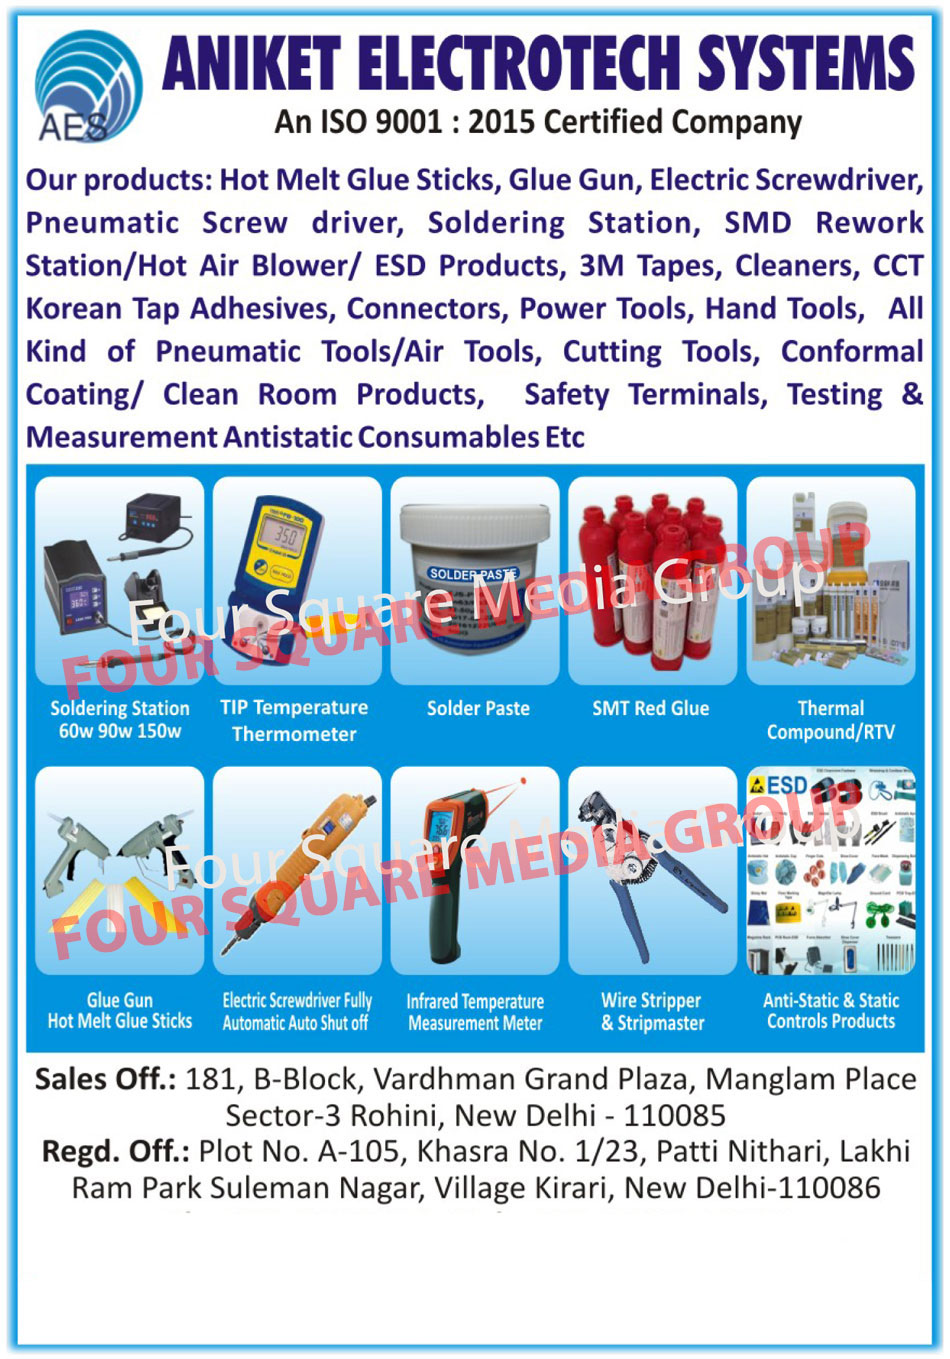 Hot Melt Glue Sticks, Glue Gun, Electric Screwdriver, Pneumatic Screwdriver, Soldering Station, SMD Rework Station, Hot Air Blower, ESD Product, 3M Tapes, Cleaner, CCT Korean Tap, CCT Korean Adhesive, Connectors, Power Tools, Hand Tools, Pneumatic Tools, Air Tools, Cutting Tools, Conformal Coating Product, Clean Room Product, Safety Terminal, Testing Consumable, Measurement Antistatic Consumable, Solder Paste, SMT Glue, Antistatic Control Product, Static Control Product